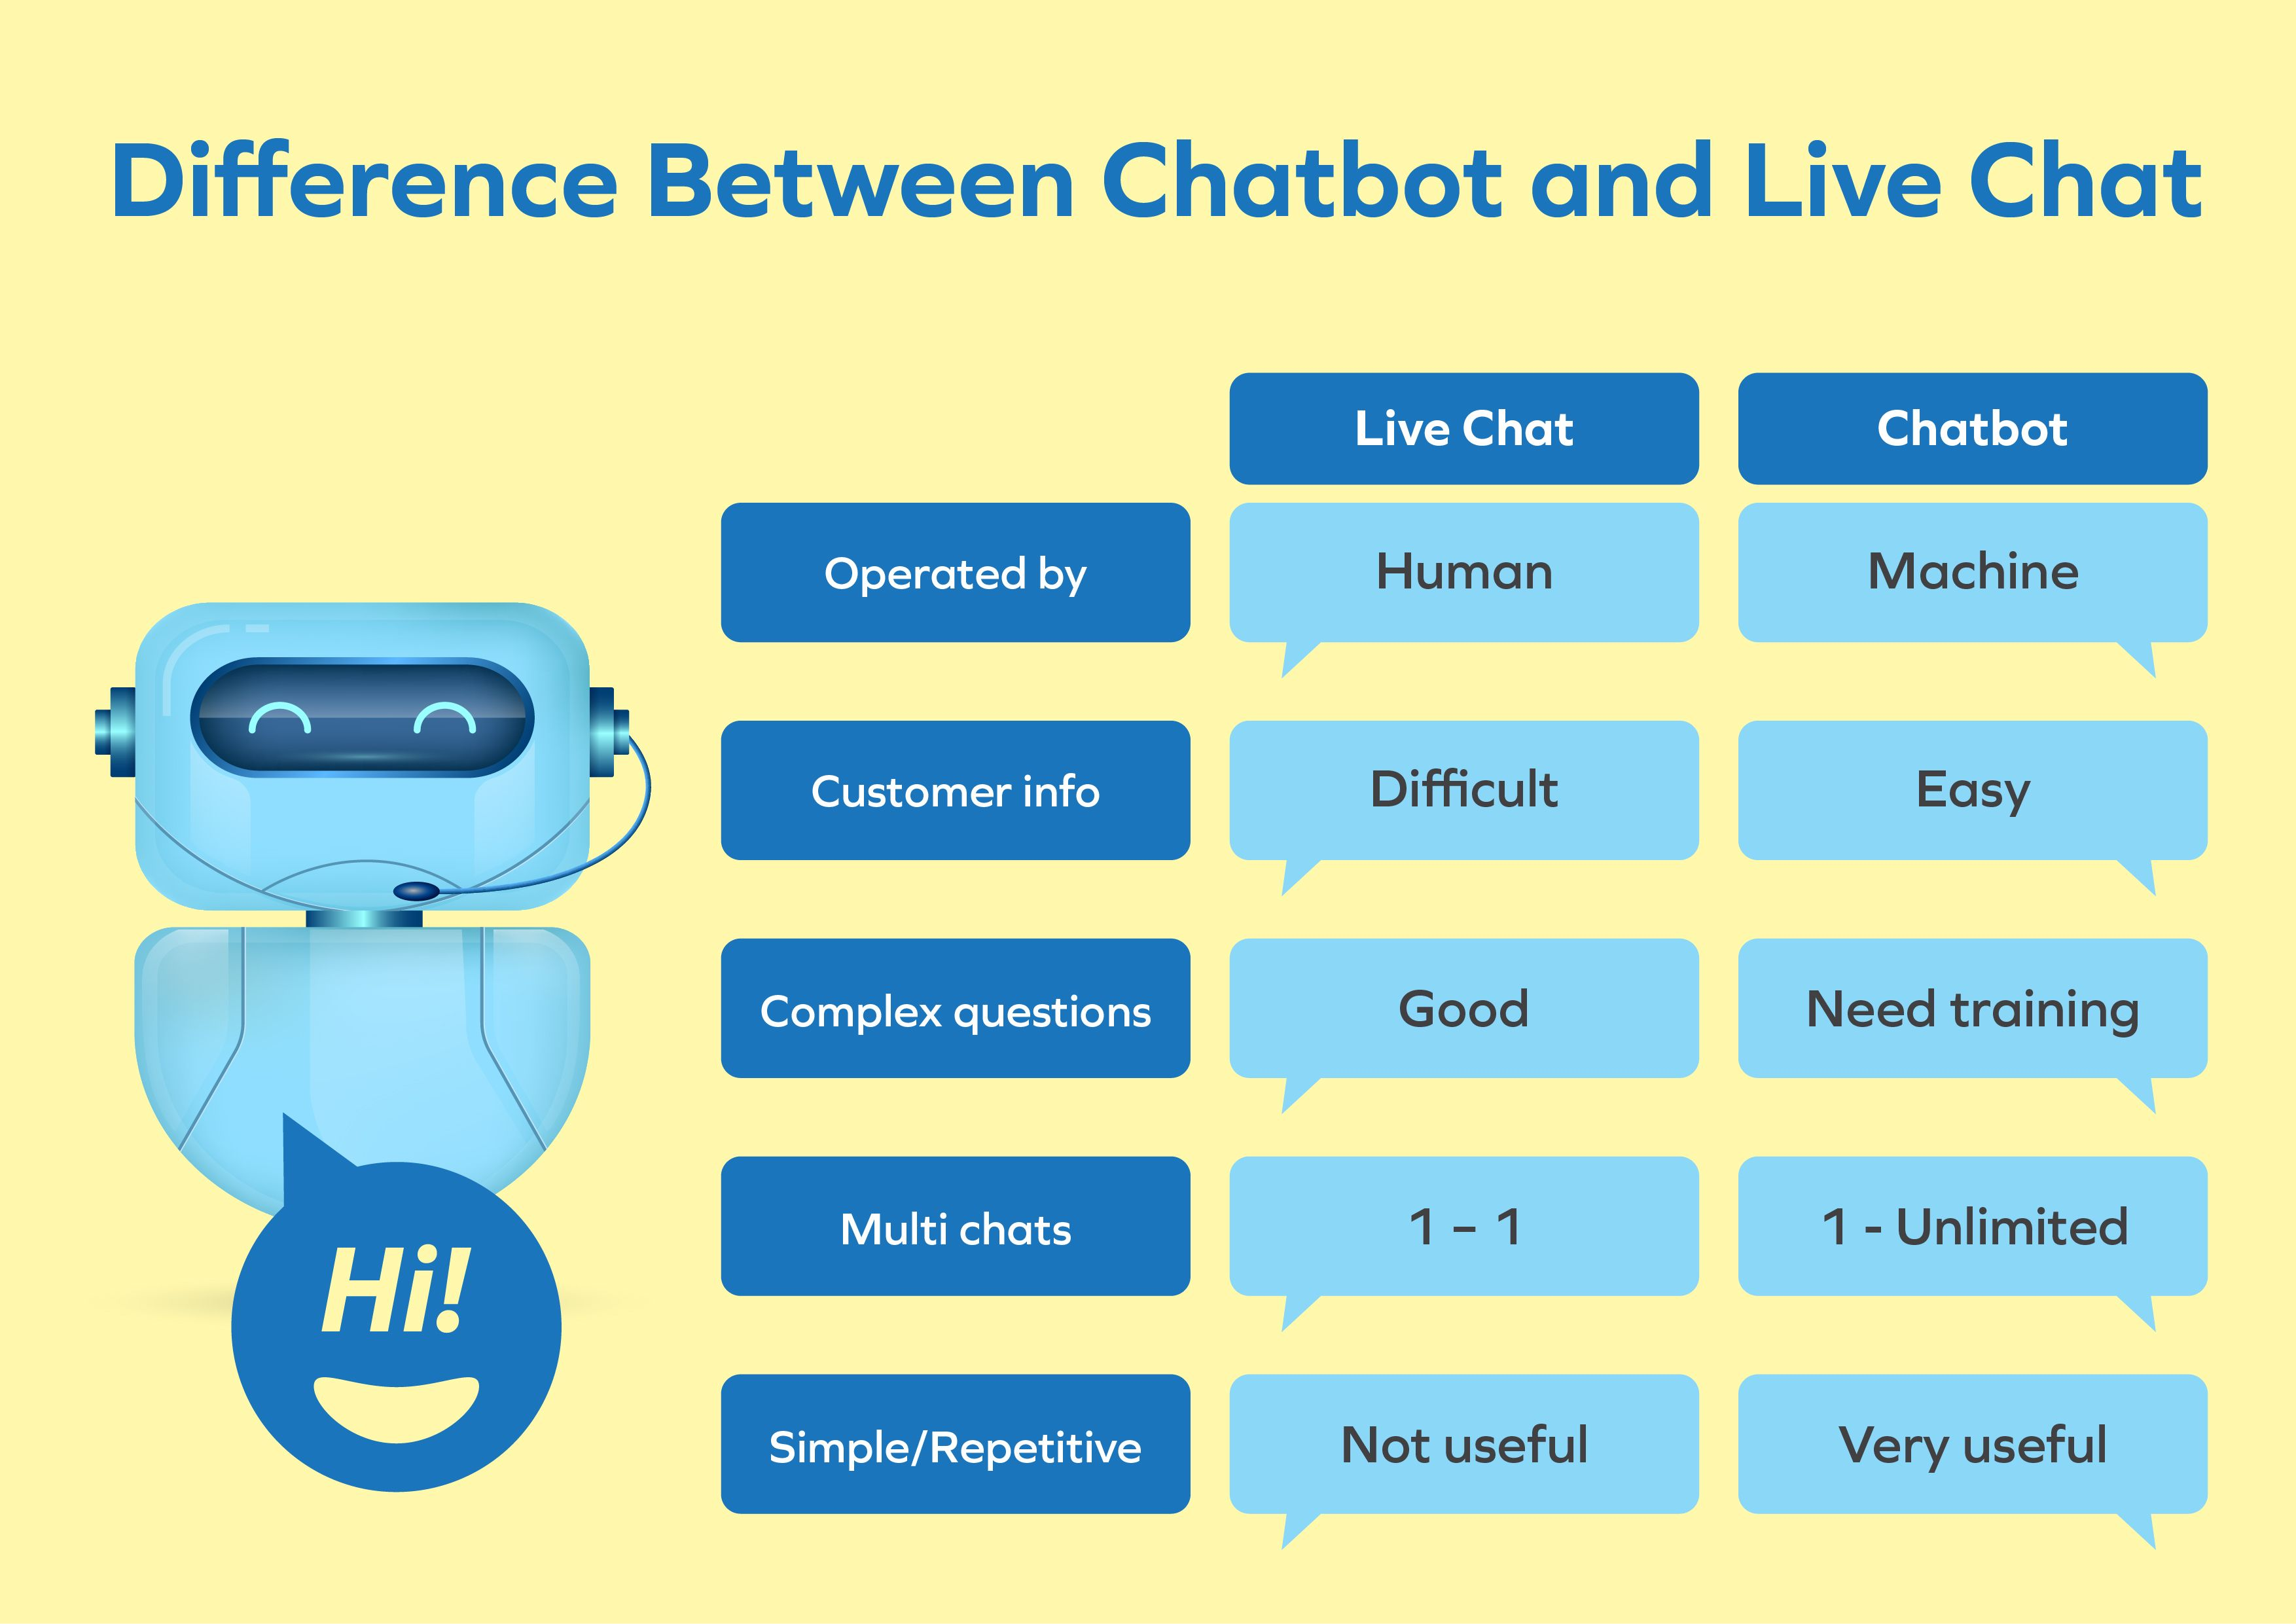 It demonstrates the difference of using chatbot and live